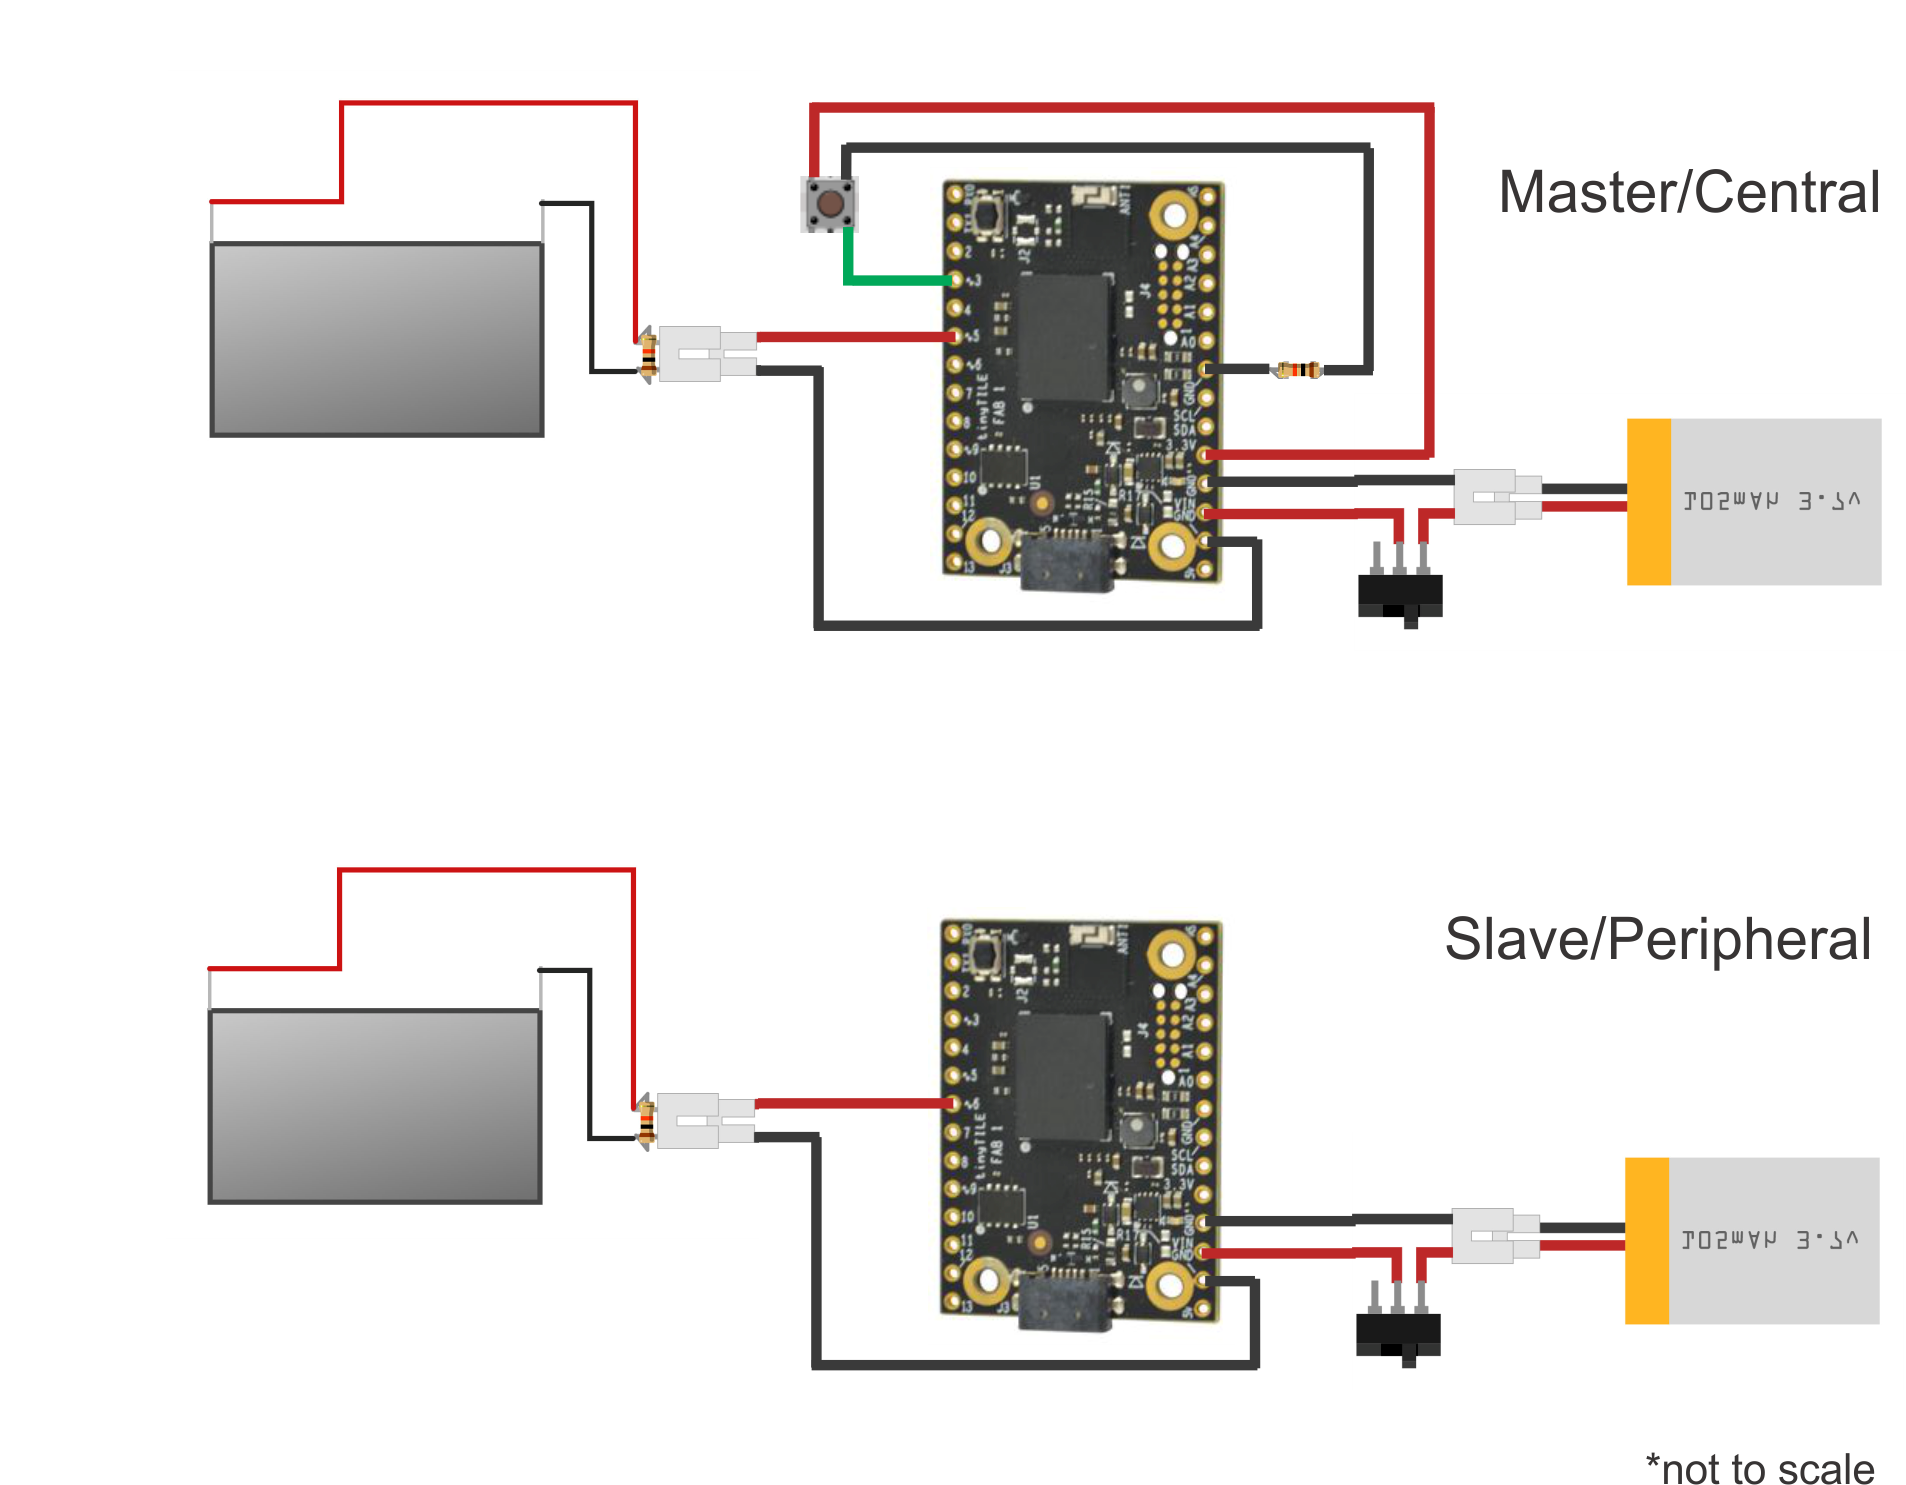 Schematic Arduino101 tinyTILE BLE Match-Making Sunglasses